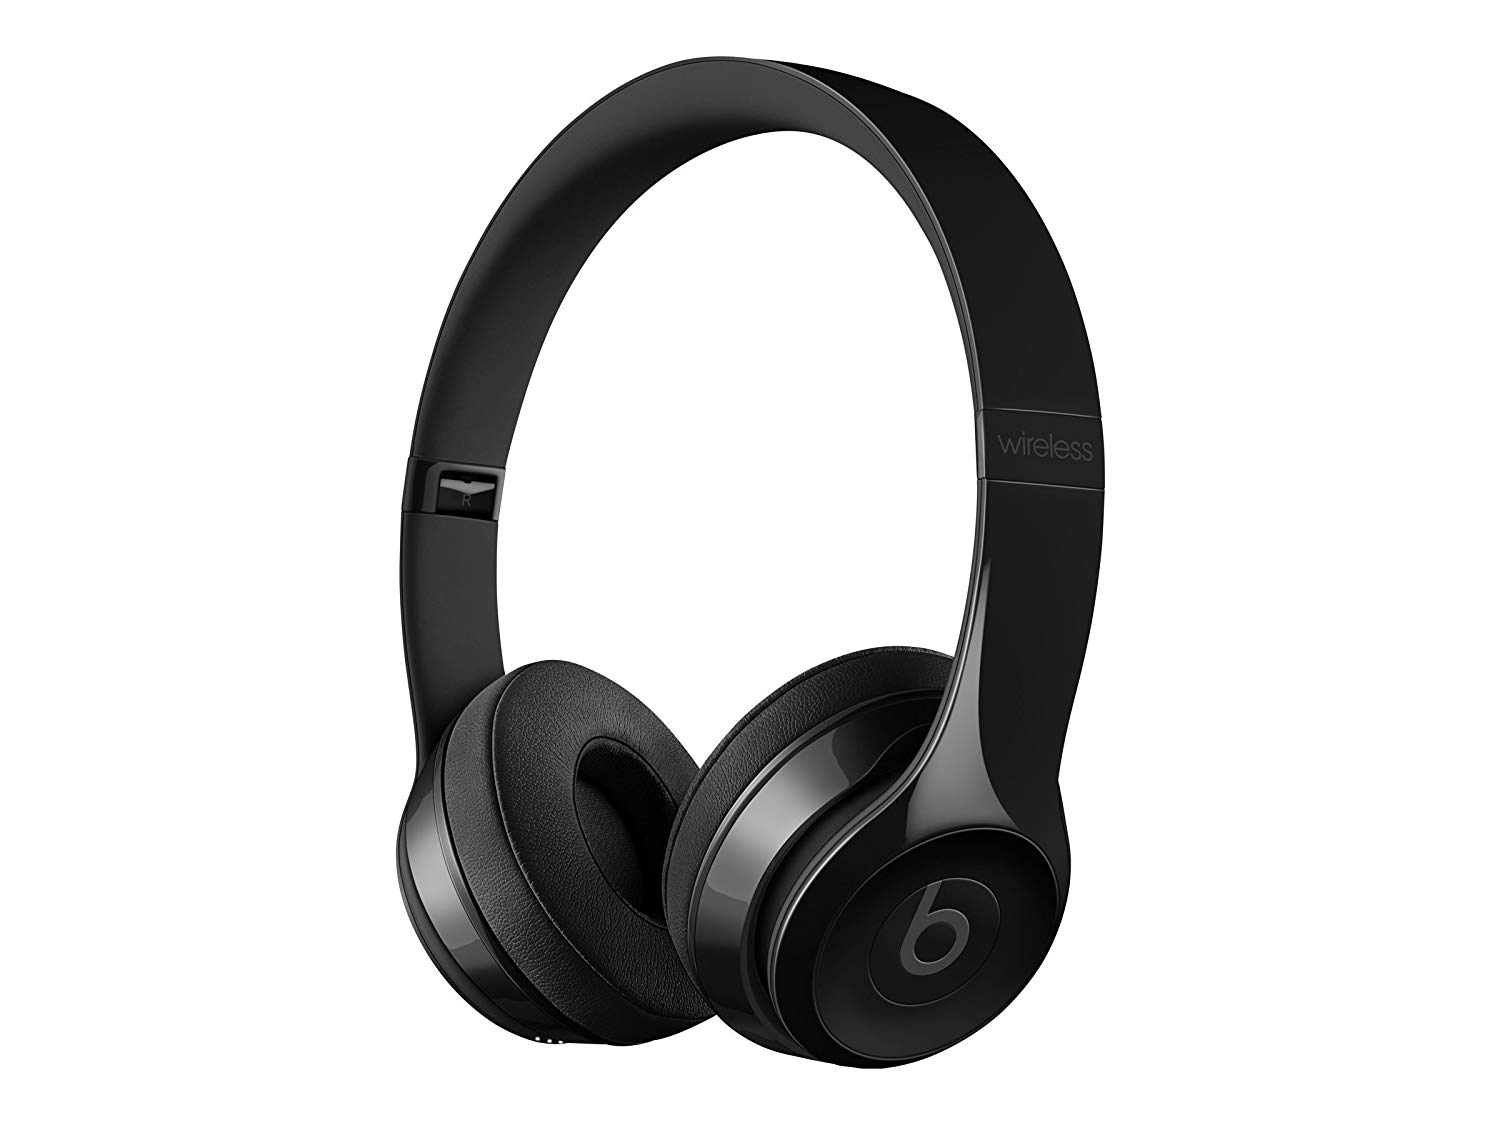 Beats Solo 3 On-Ear Wireless Headphones